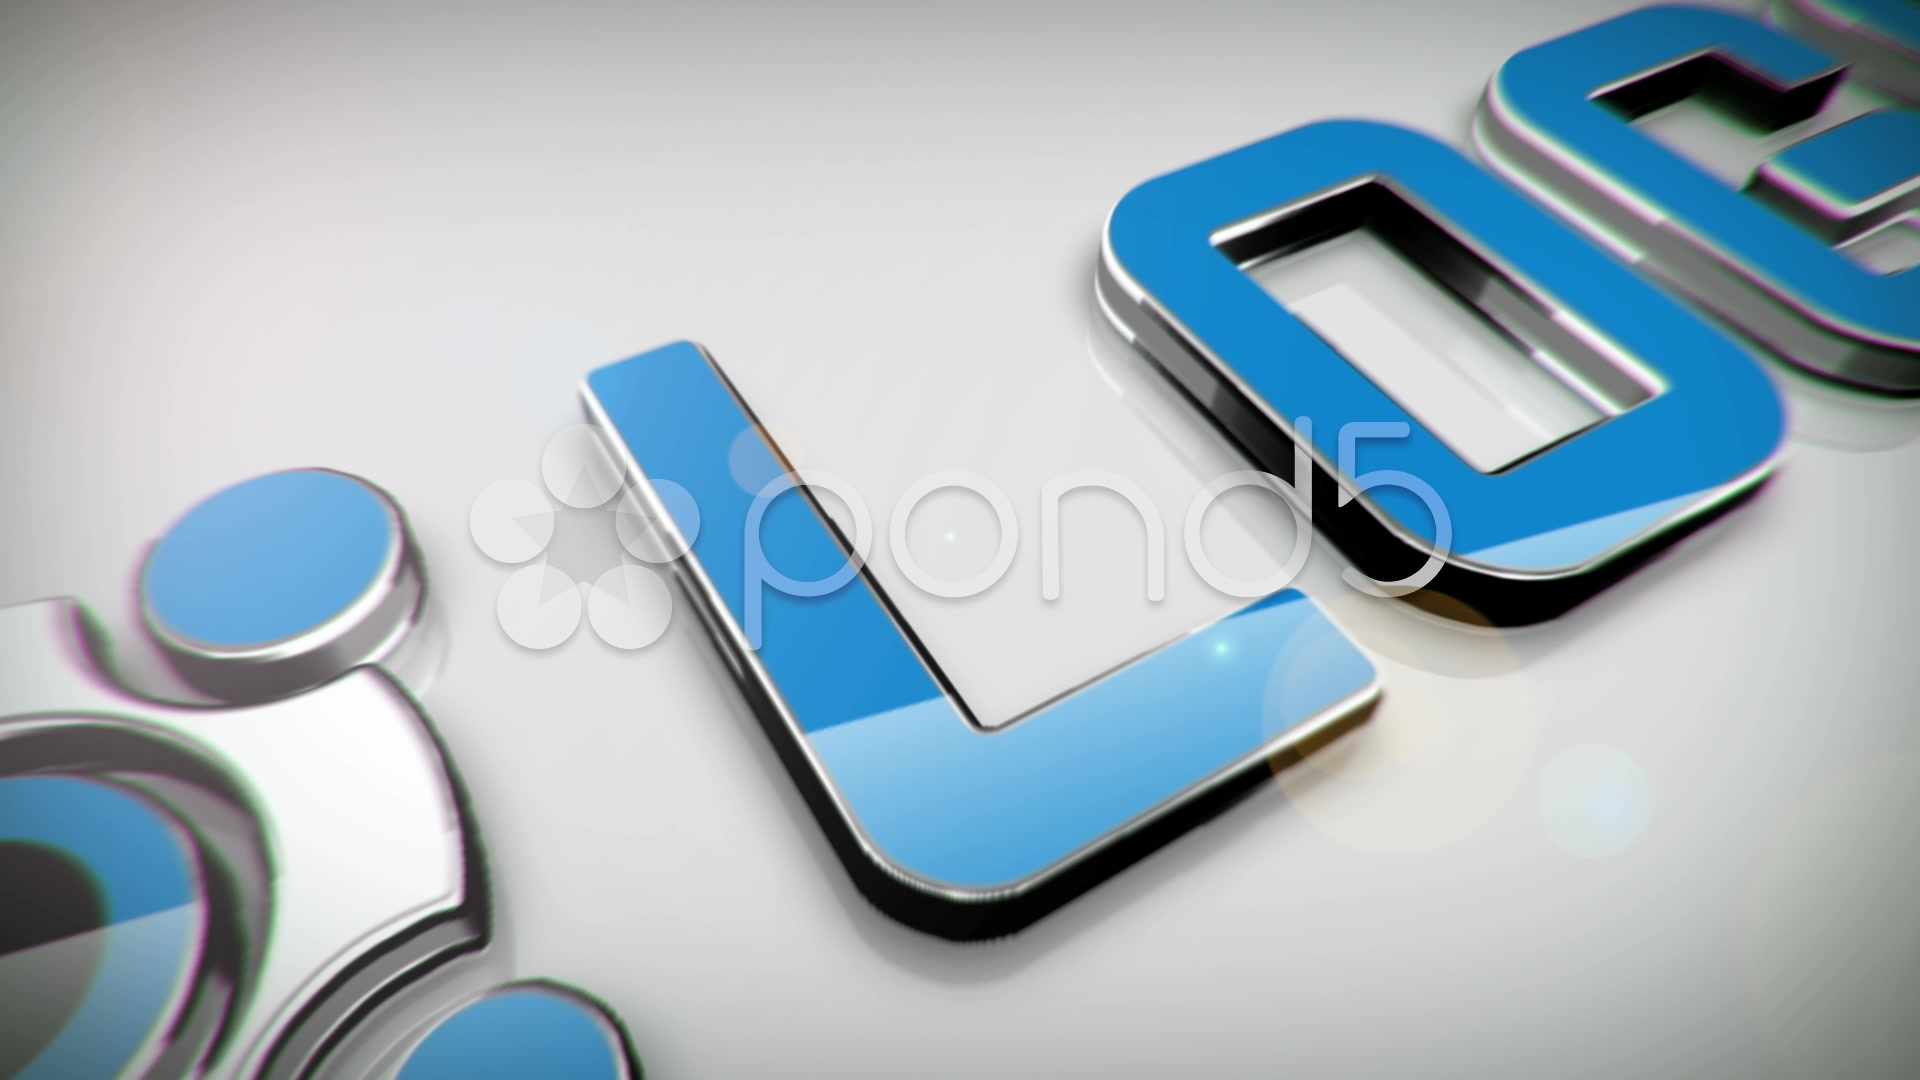 After Effects Project - Pond5 Simple 3D Logo 37229323